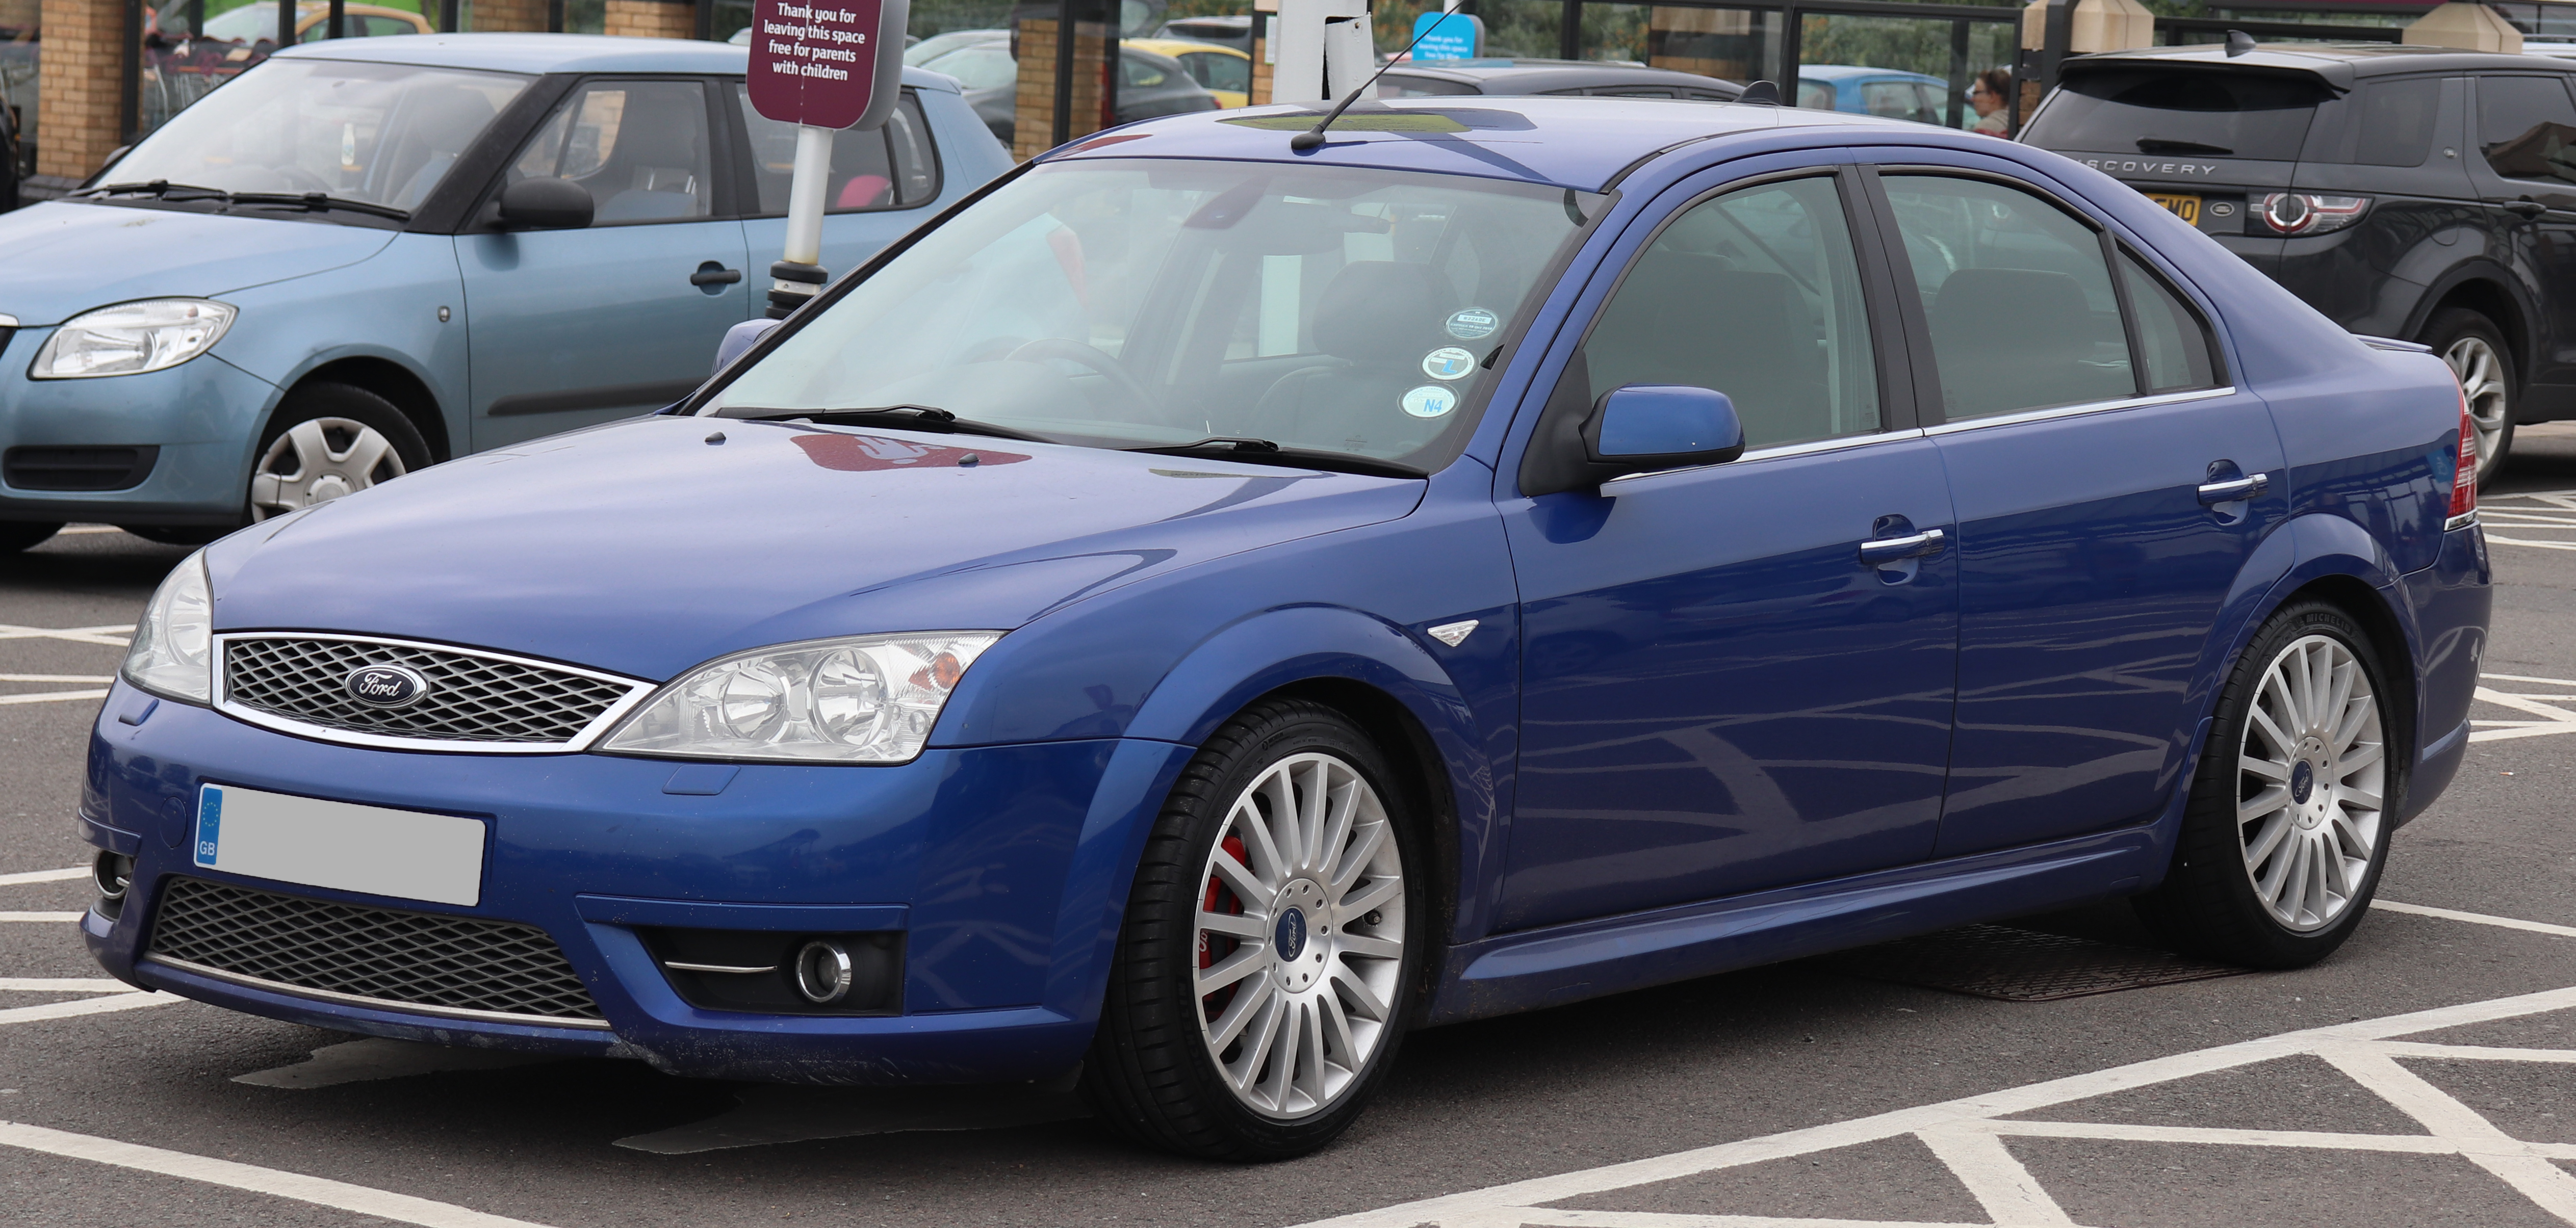 file 2006 ford mondeo st220 tdci wikimedia commons. Black Bedroom Furniture Sets. Home Design Ideas